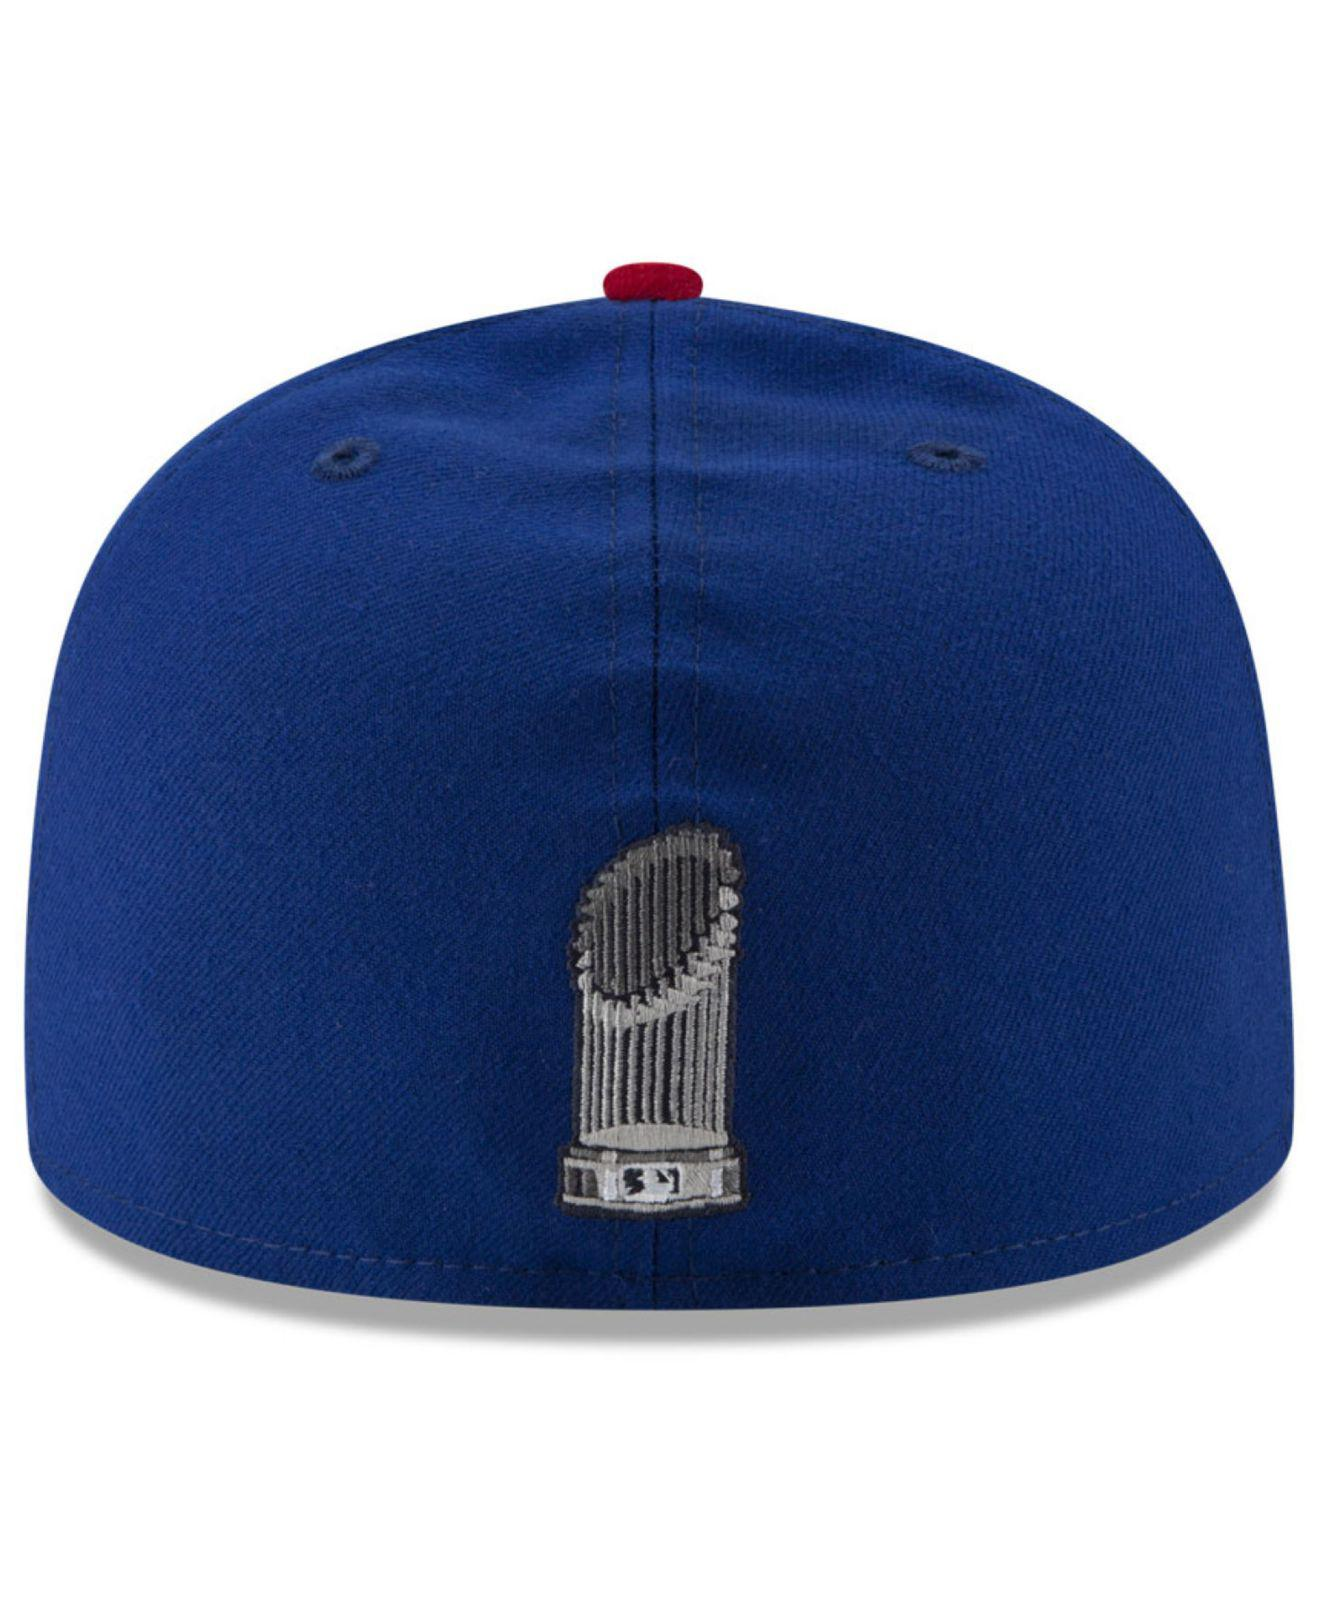 Lyst - Ktz Chicago Cubs World Series Trophy 59fifty Cap in Blue for Men 1962bae7a36